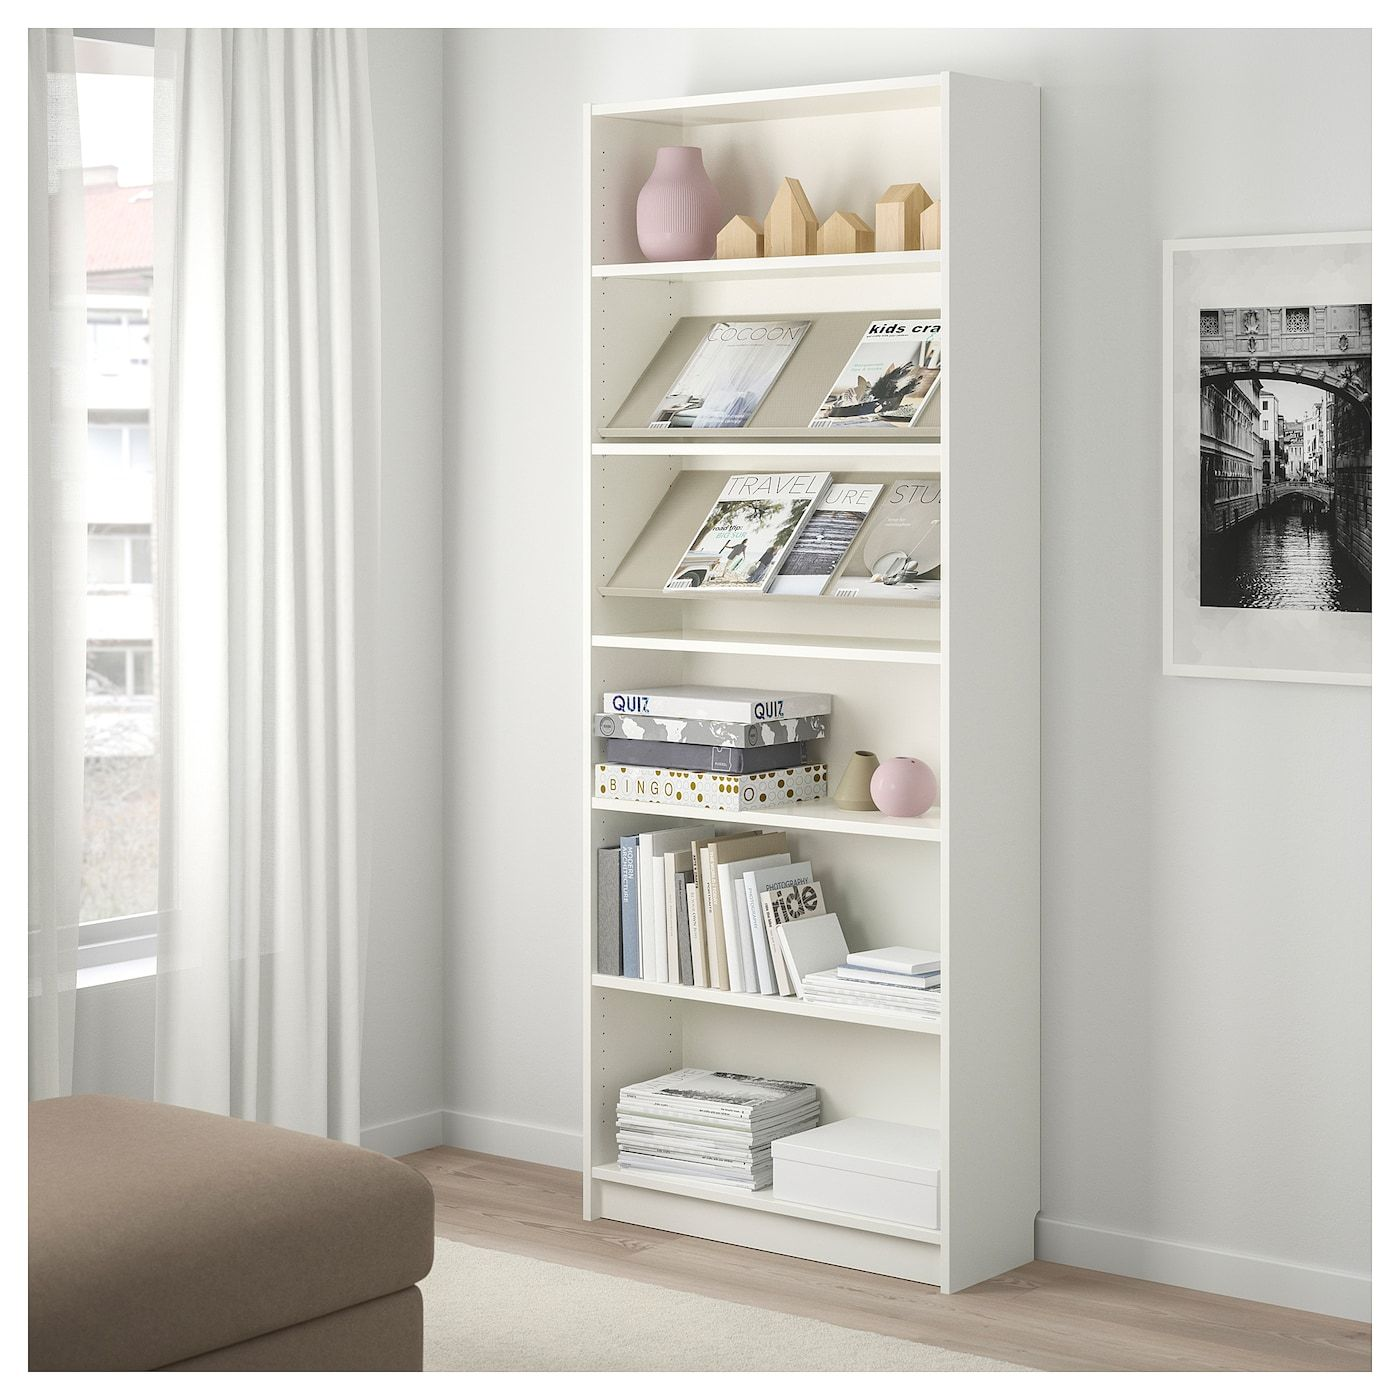 Billy Bottna Bucherregal Mit Facheinlage Weiss Beige Ikea Deutschland Display Shelves Bookcase Shelves